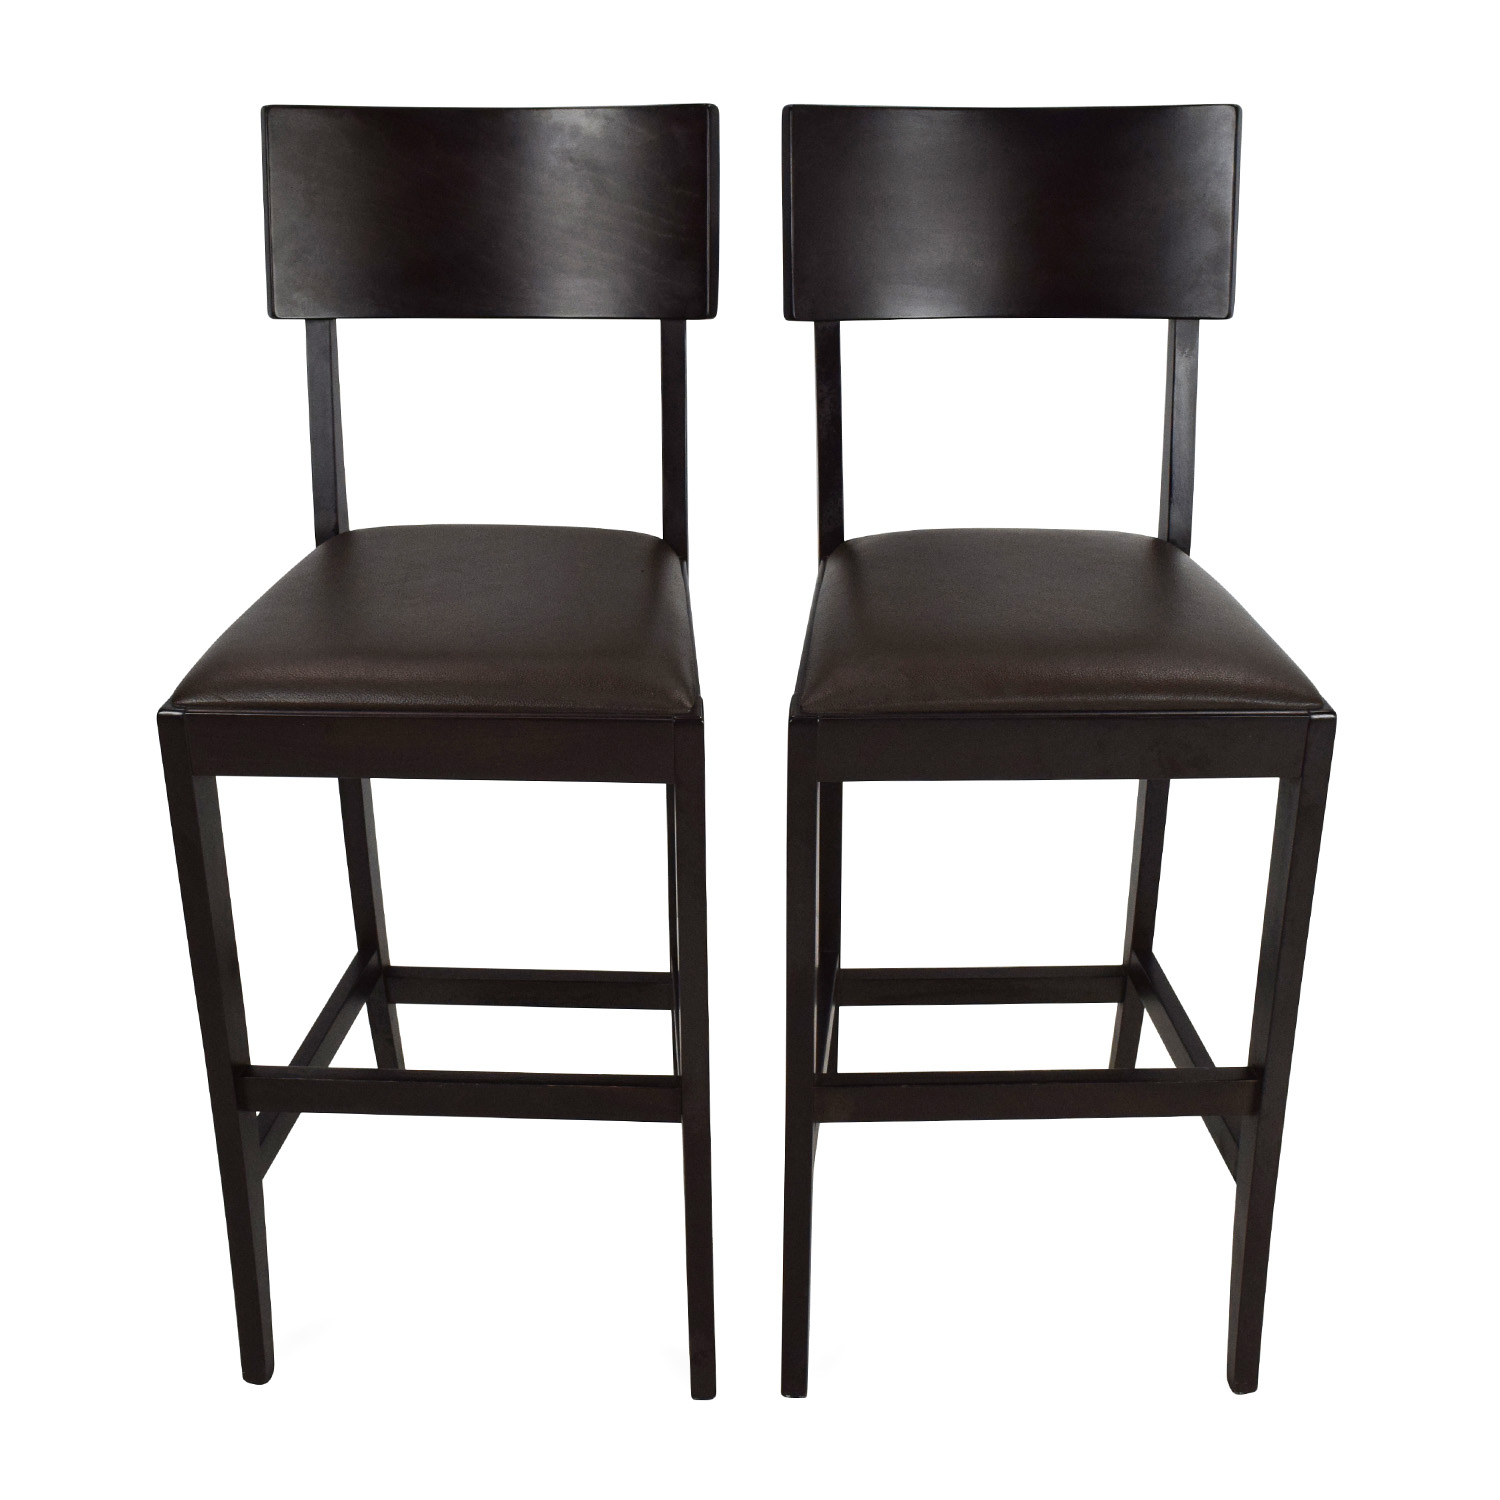 Crate and Barrel Crate and Barrel Bar Stools nj